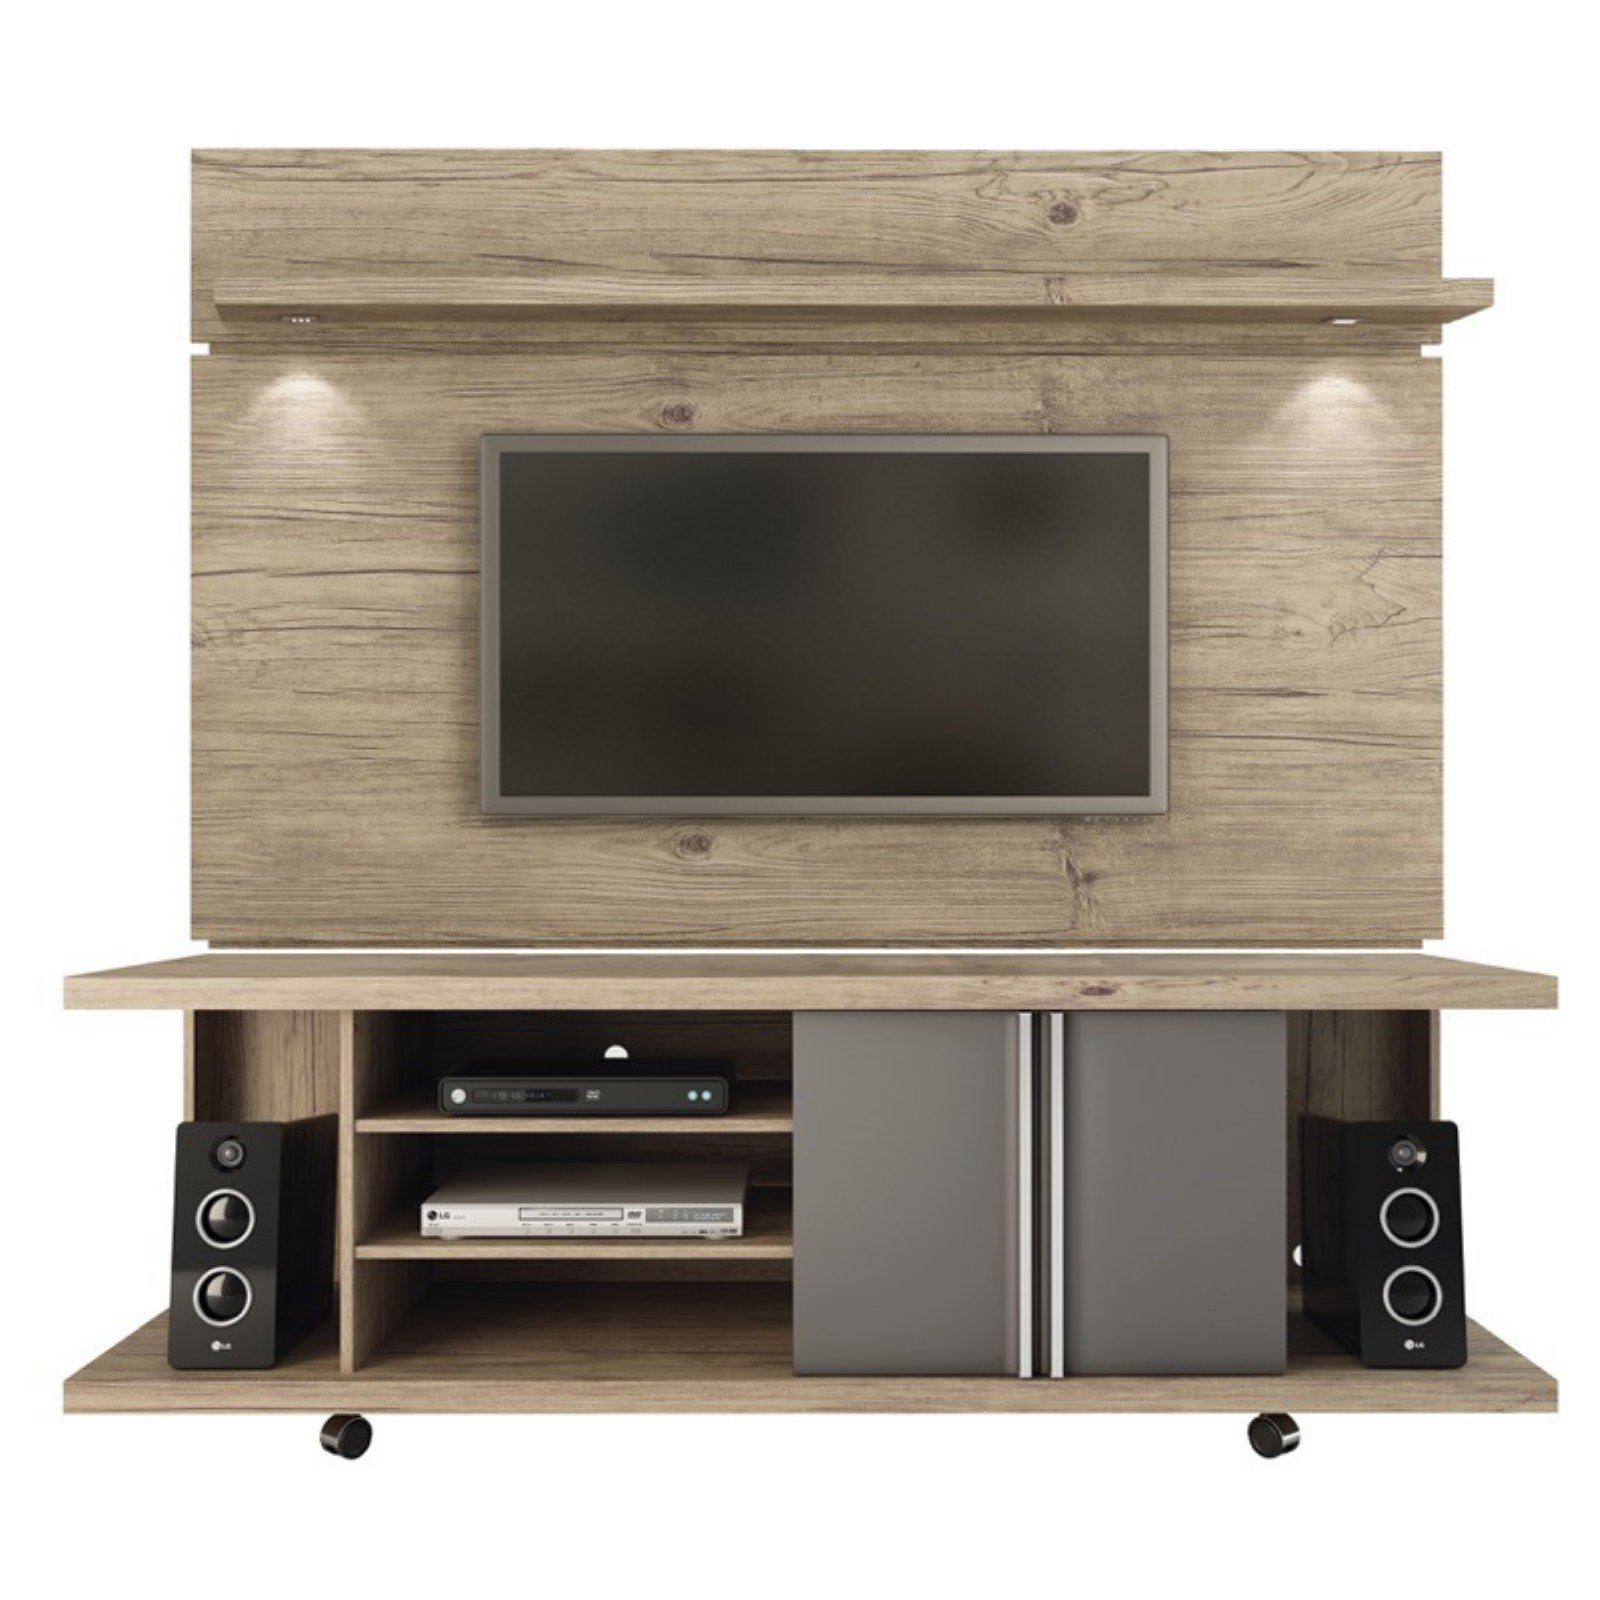 Manhattan Comfort Carnegie 71 in. TV Stand